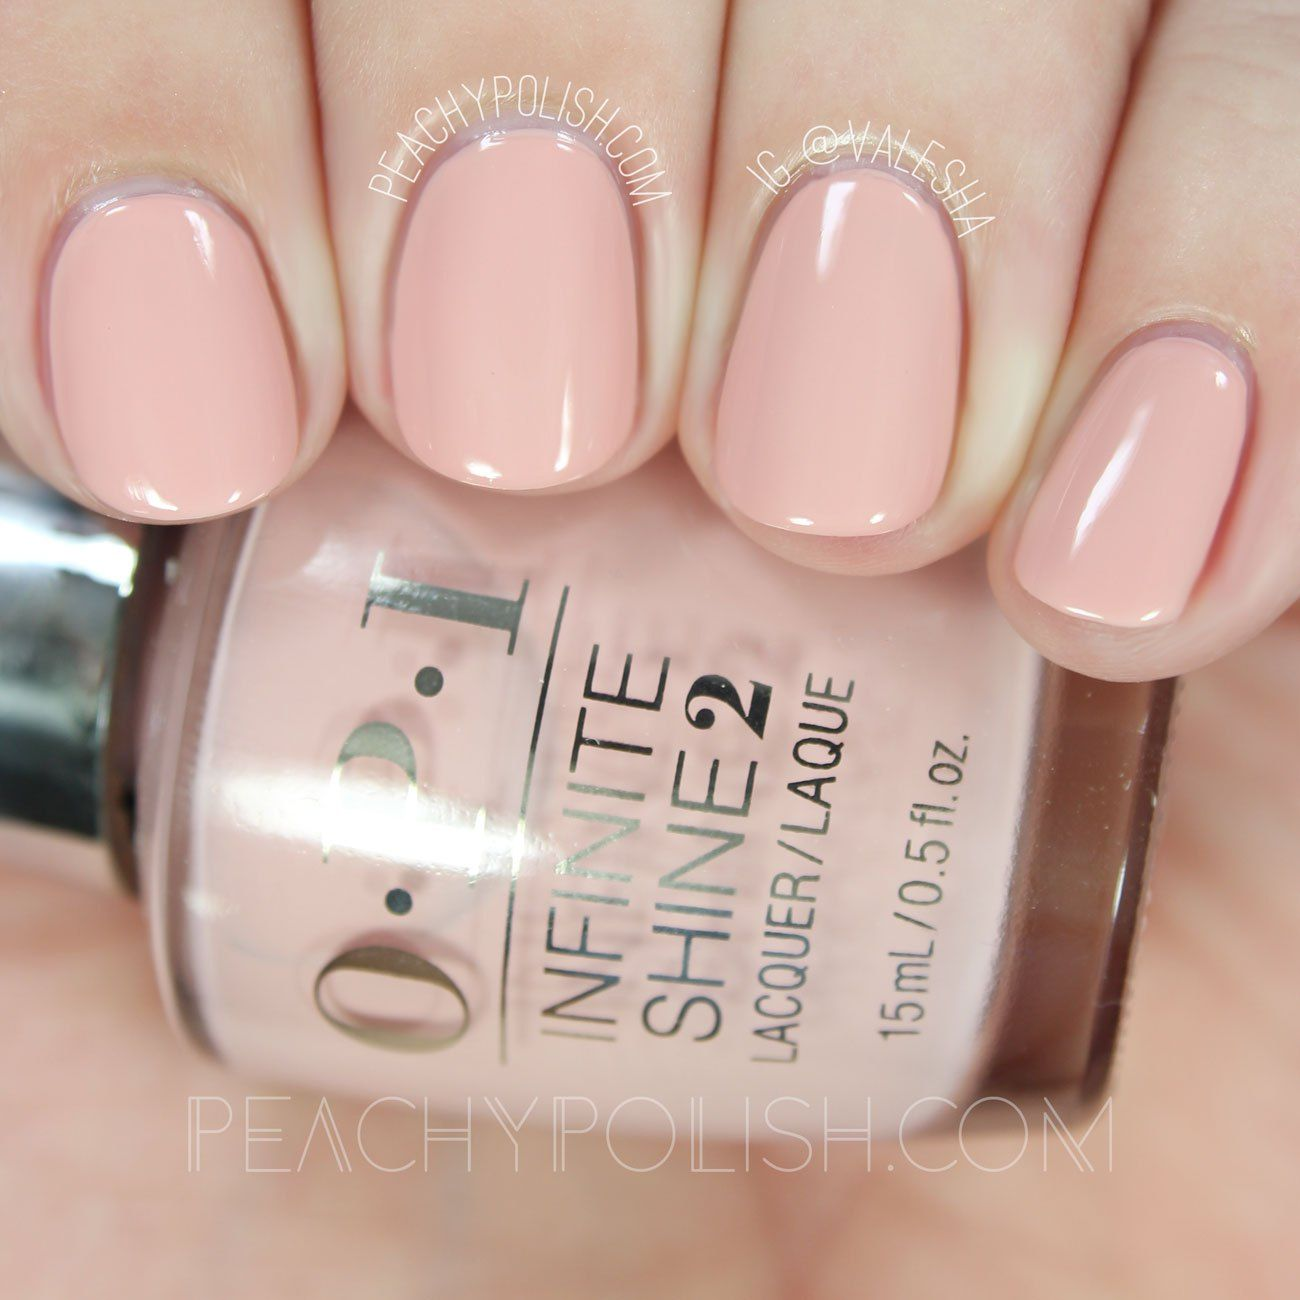 Opi Spring 2016 Infinite Shine Collection Swatches Review Opi Nail Polish Colors Nail Polish Colors Nails